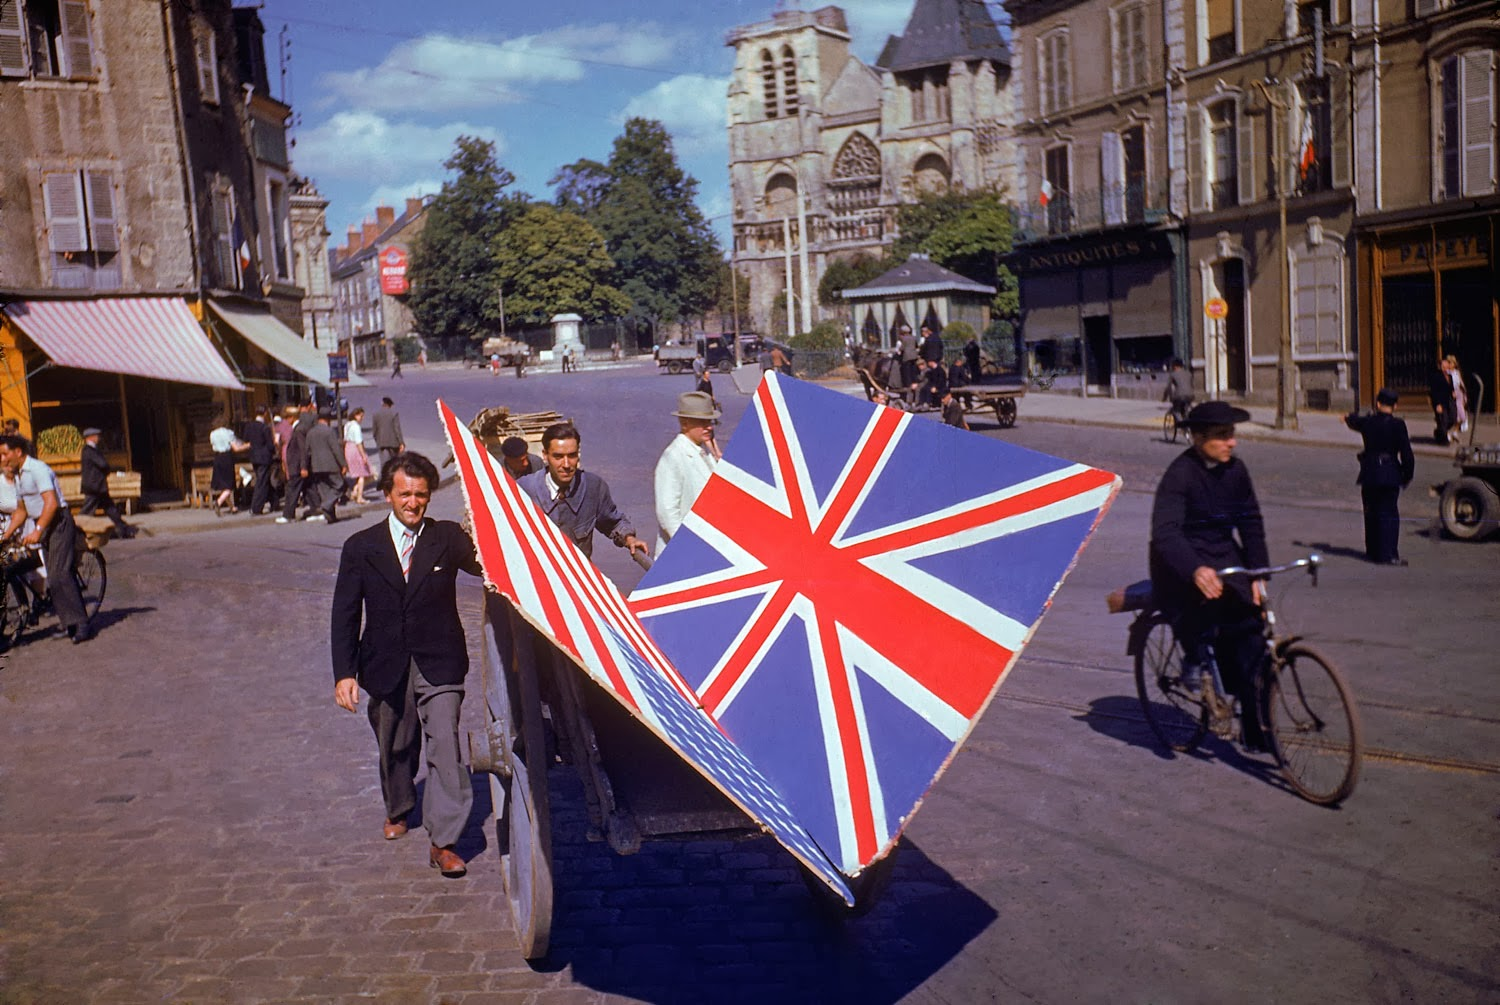 DDay The Invasion of Normandy in color photographs